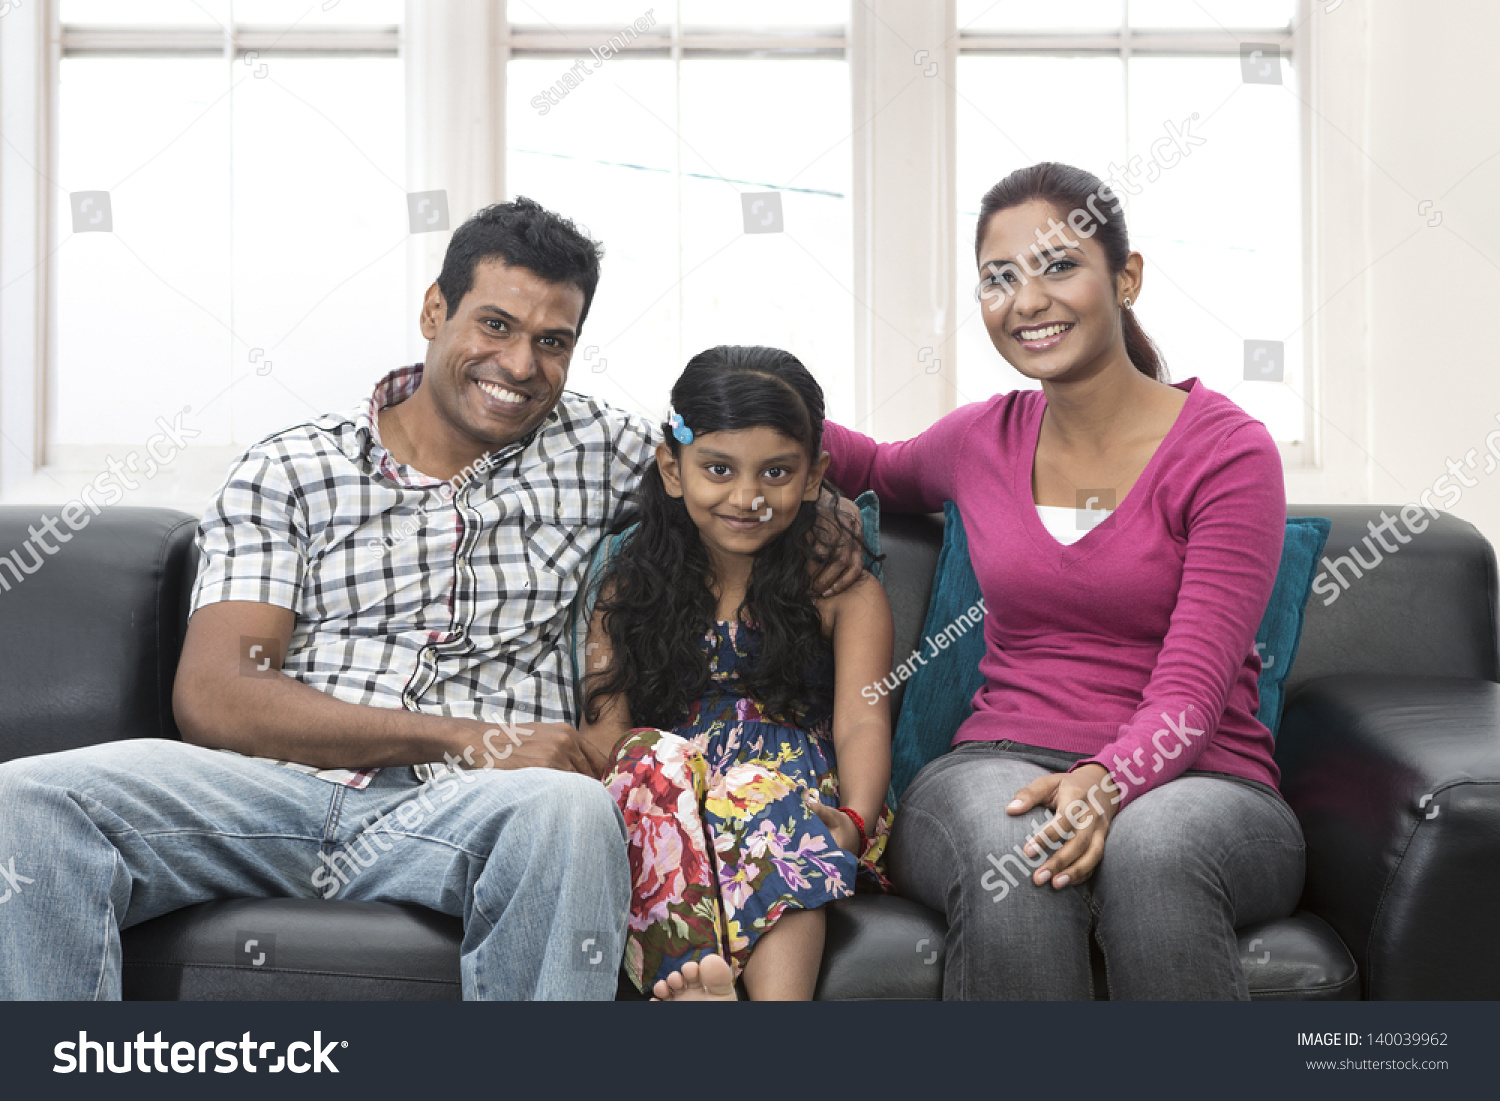 Happy Indian Family At Home With There Child Sitting On  : stock photo happy indian family at home with there child sitting on sofa 140039962 from shutterstock.com size 1500 x 1101 jpeg 524kB